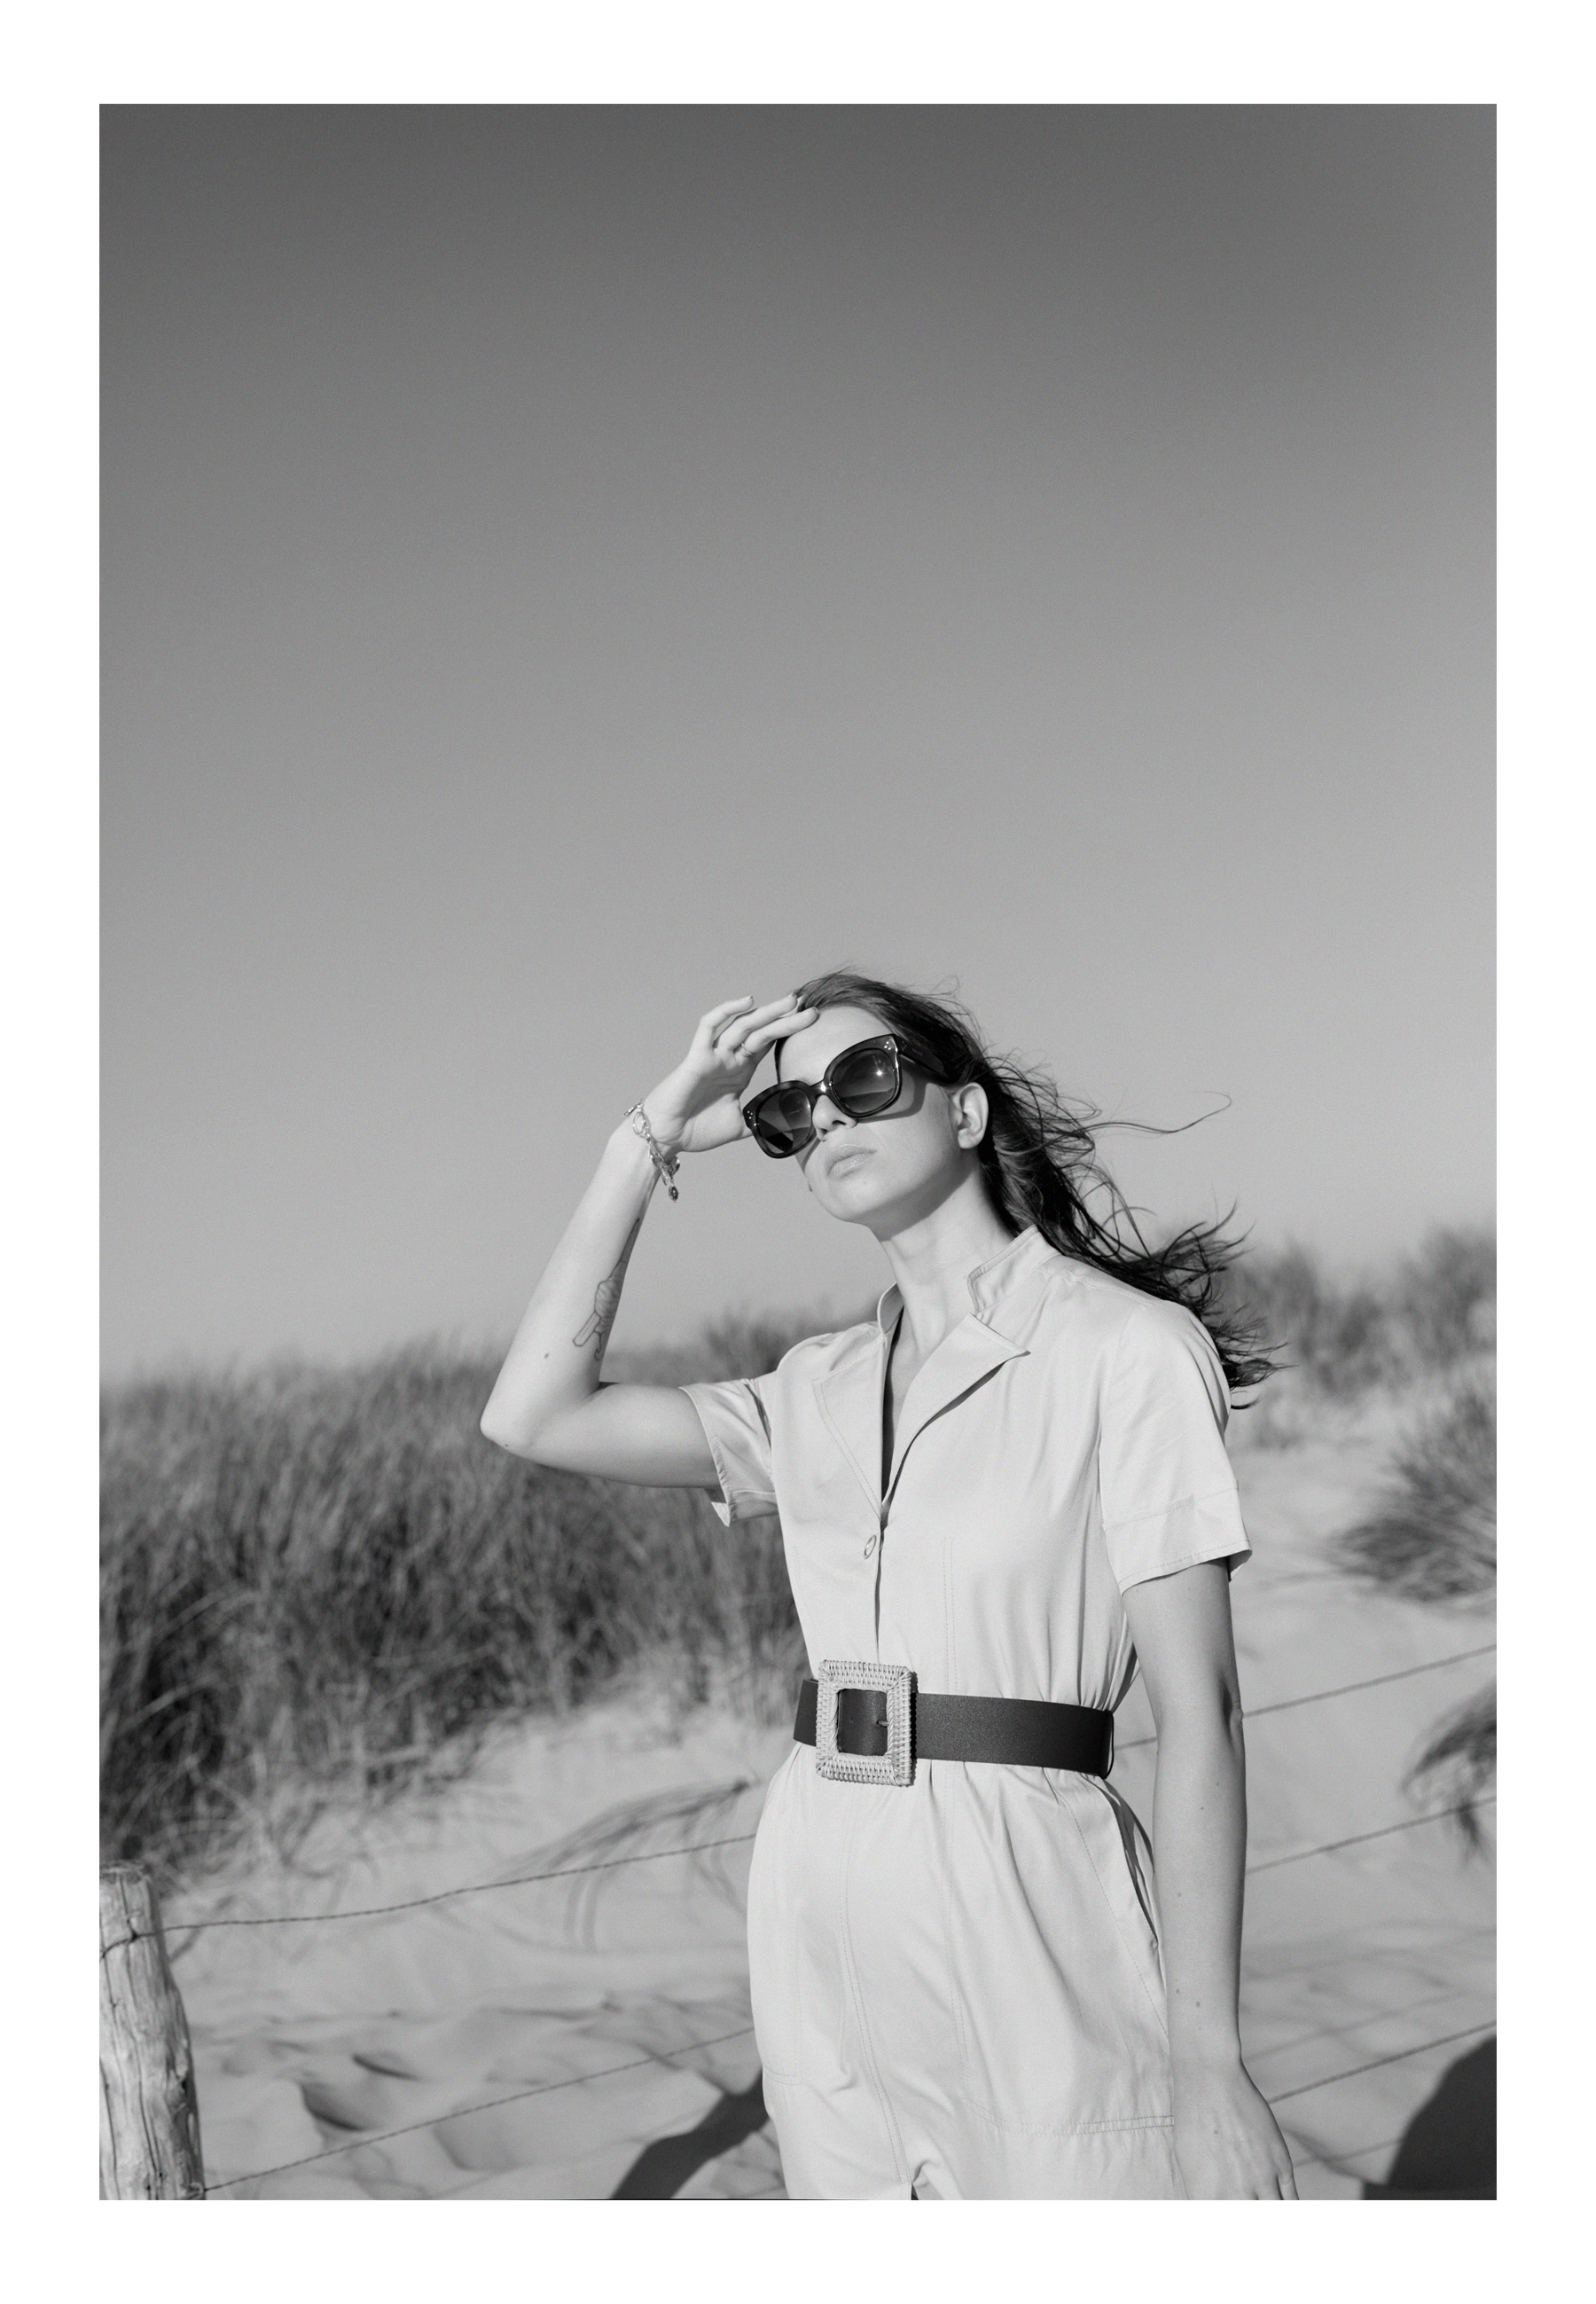 beach holland bloemendaal safari city dress outfit couple coupleblog couplegoals couplestyle romance love vintage style inspo inspiration black and white photography dusseldorf catsanddogsblog ricarda schernus modeblogger styleblog max bechmann fotograf 1